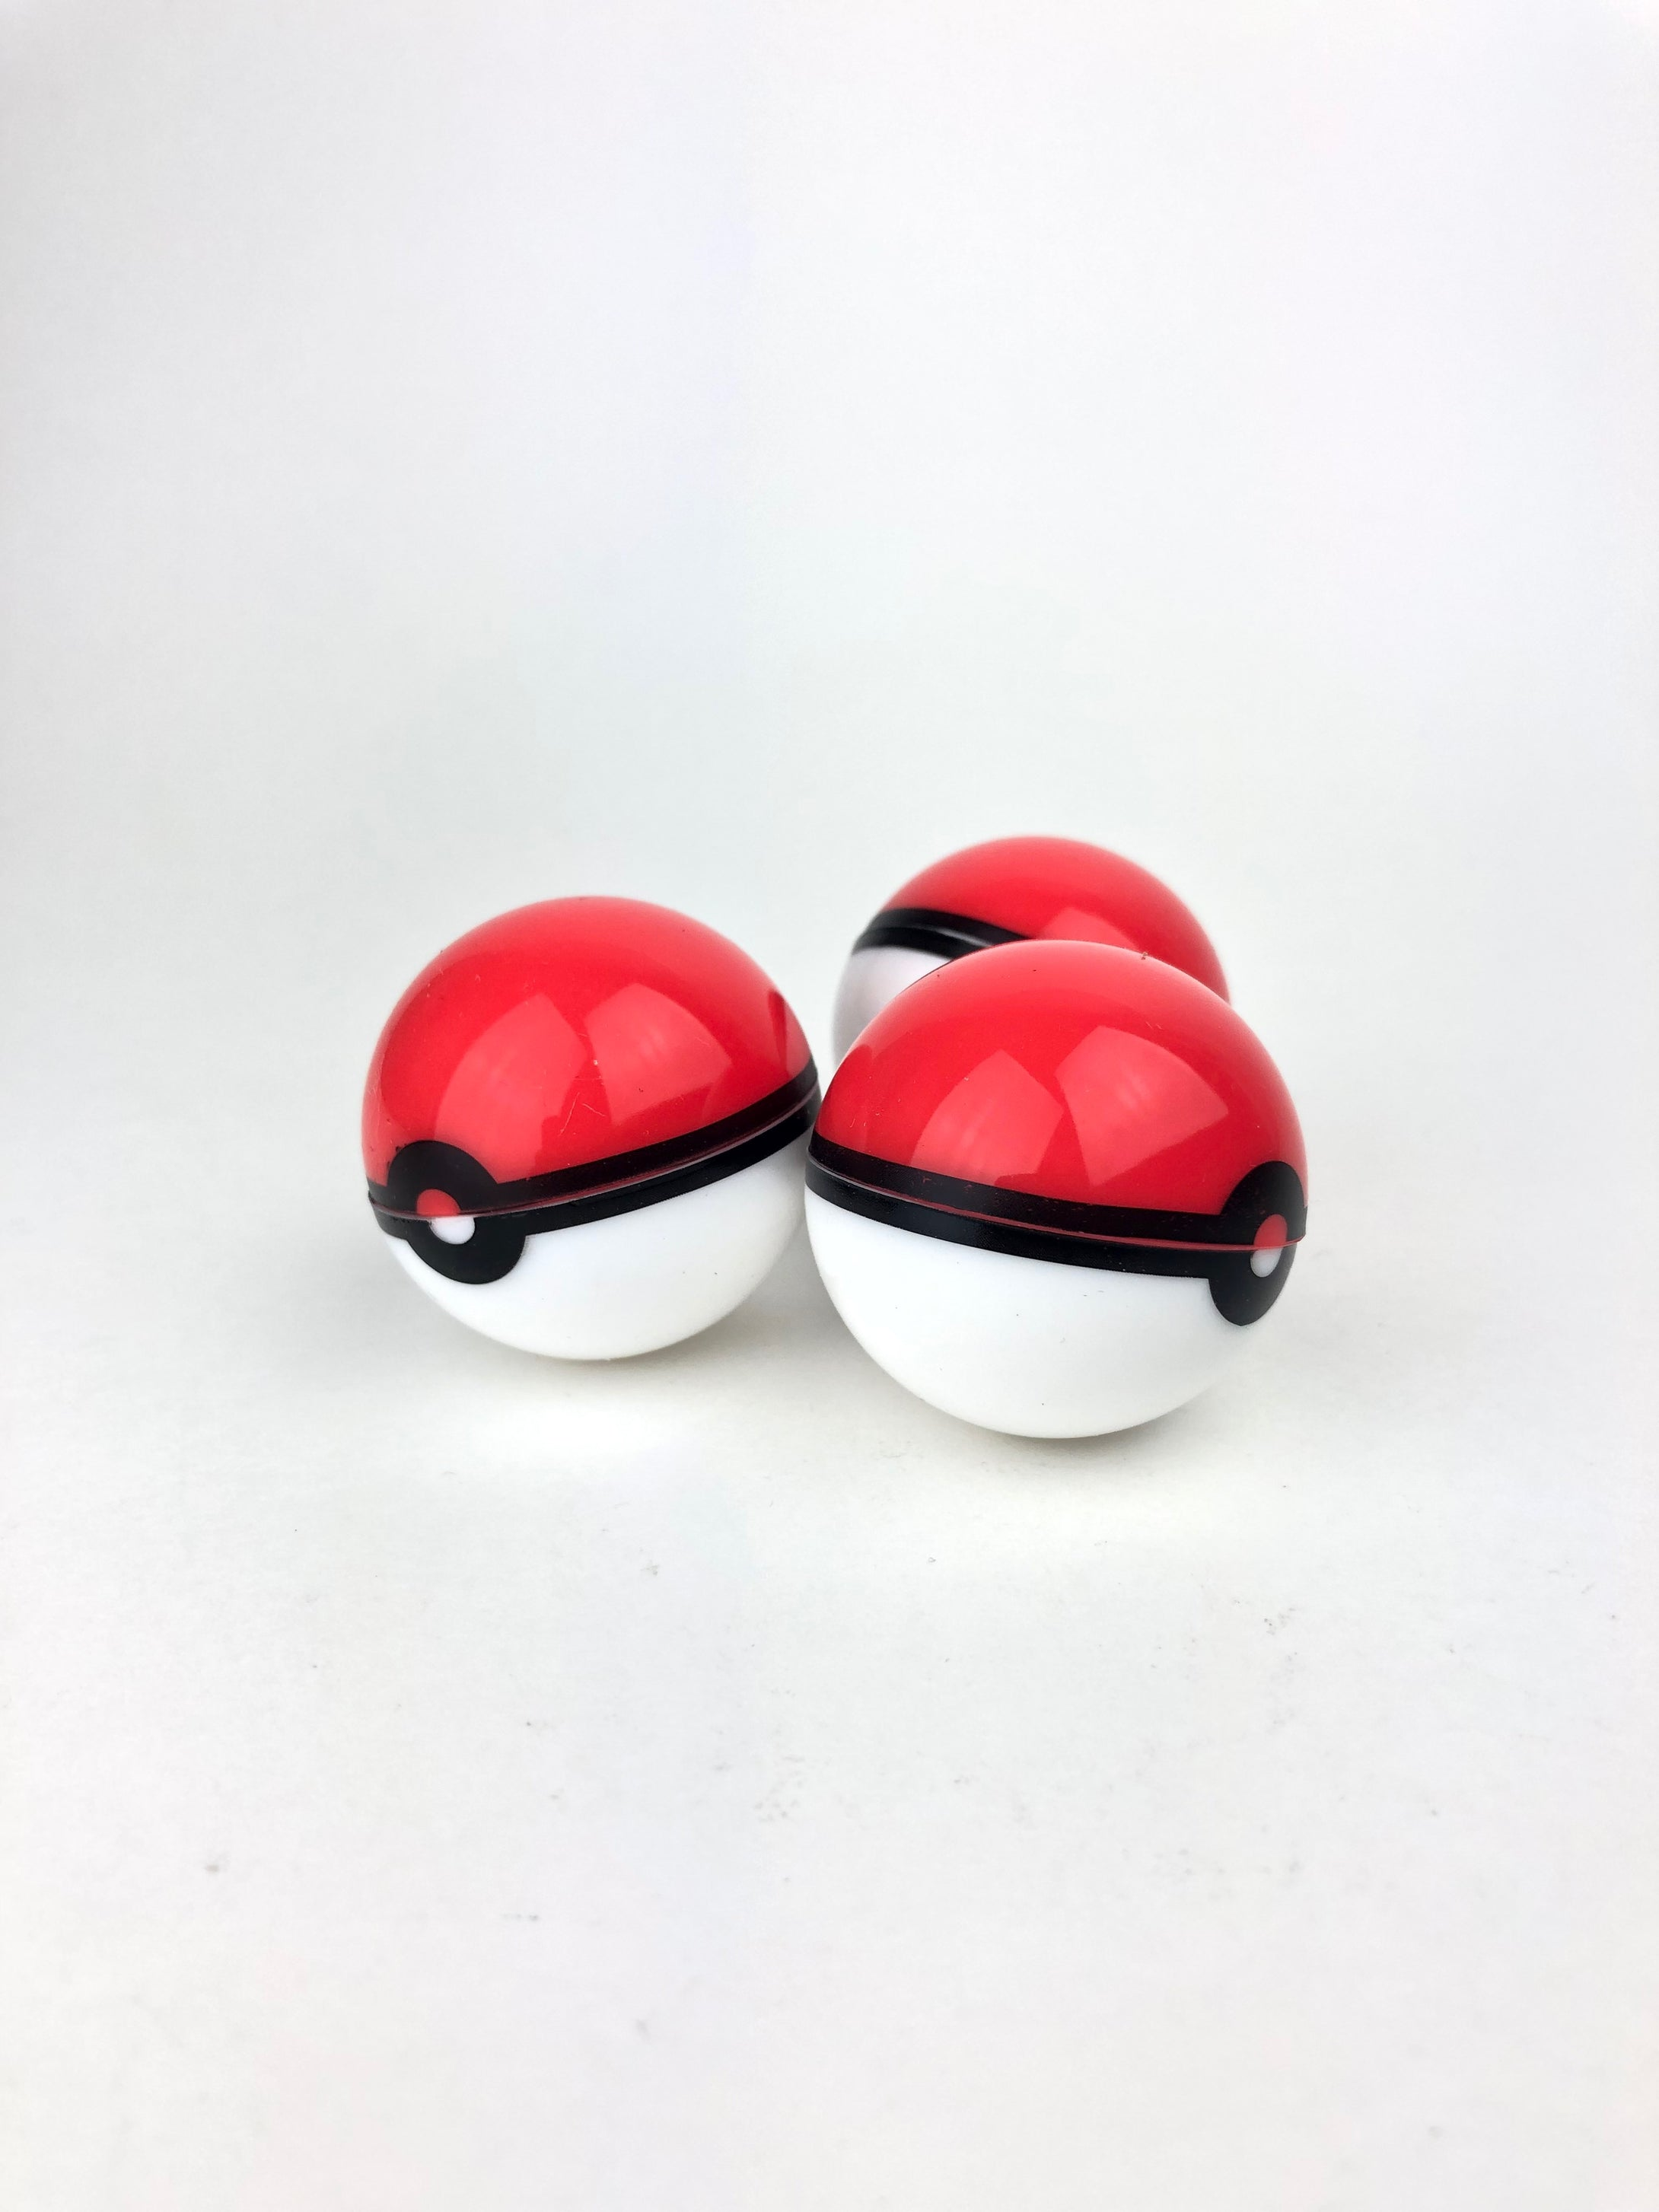 PokeBall Silicon Jar